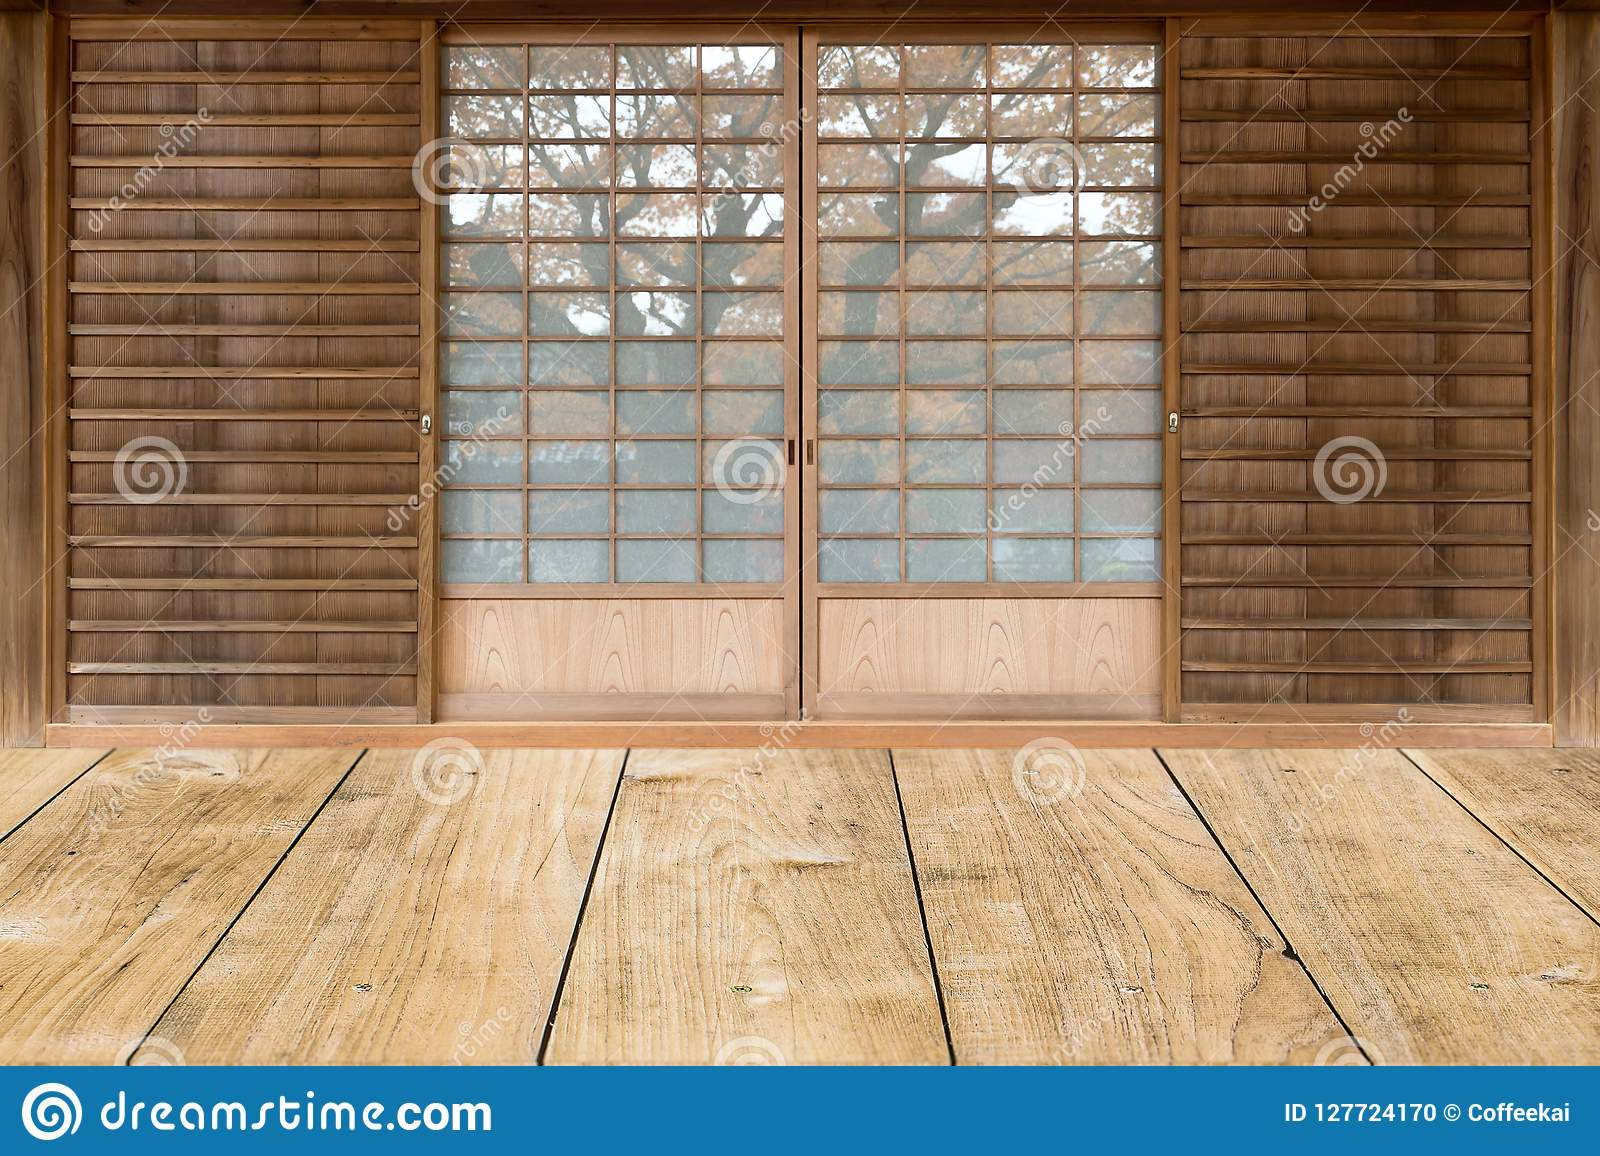 369 Japanese Bamboo Door Photos Free Royalty Free Stock Photos From Dreamstime